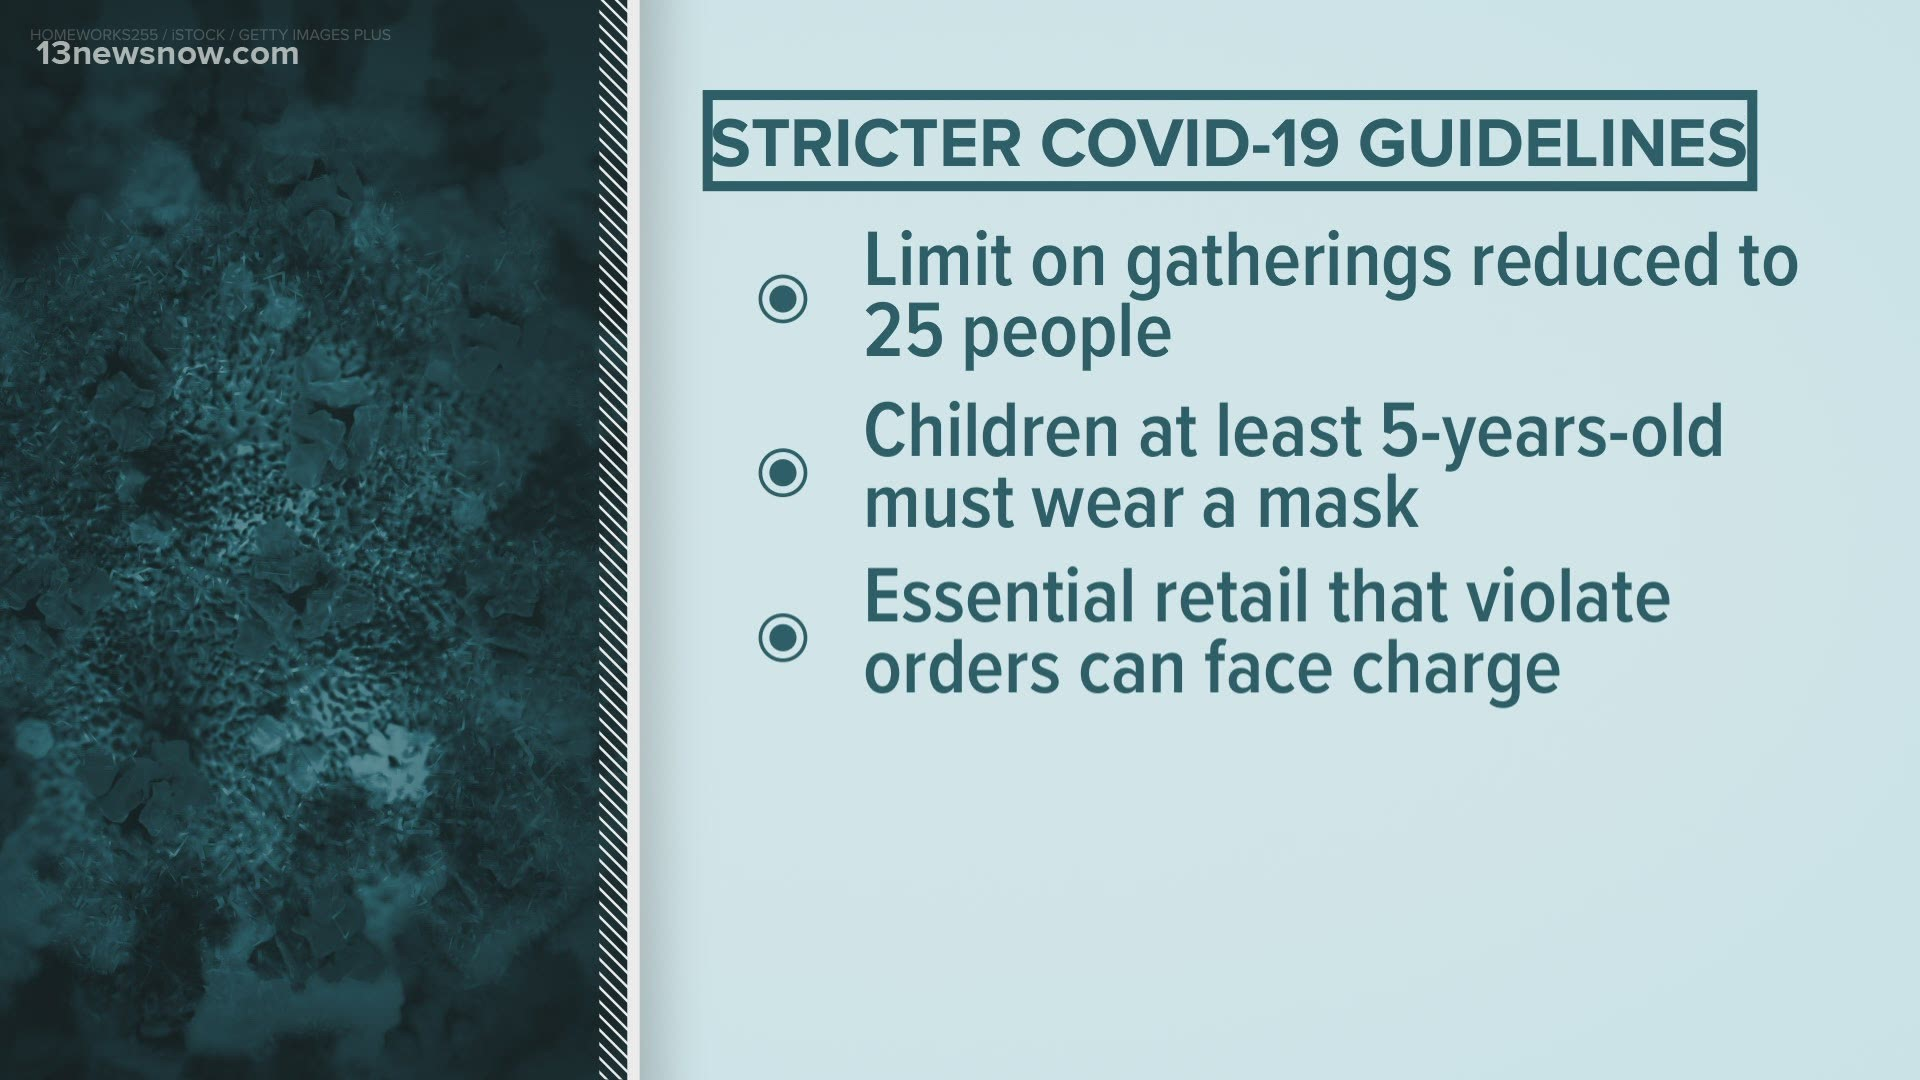 Gov Northam Announces New Statewide Covid 19 Restrictions As Cases Surge Whas11 Com